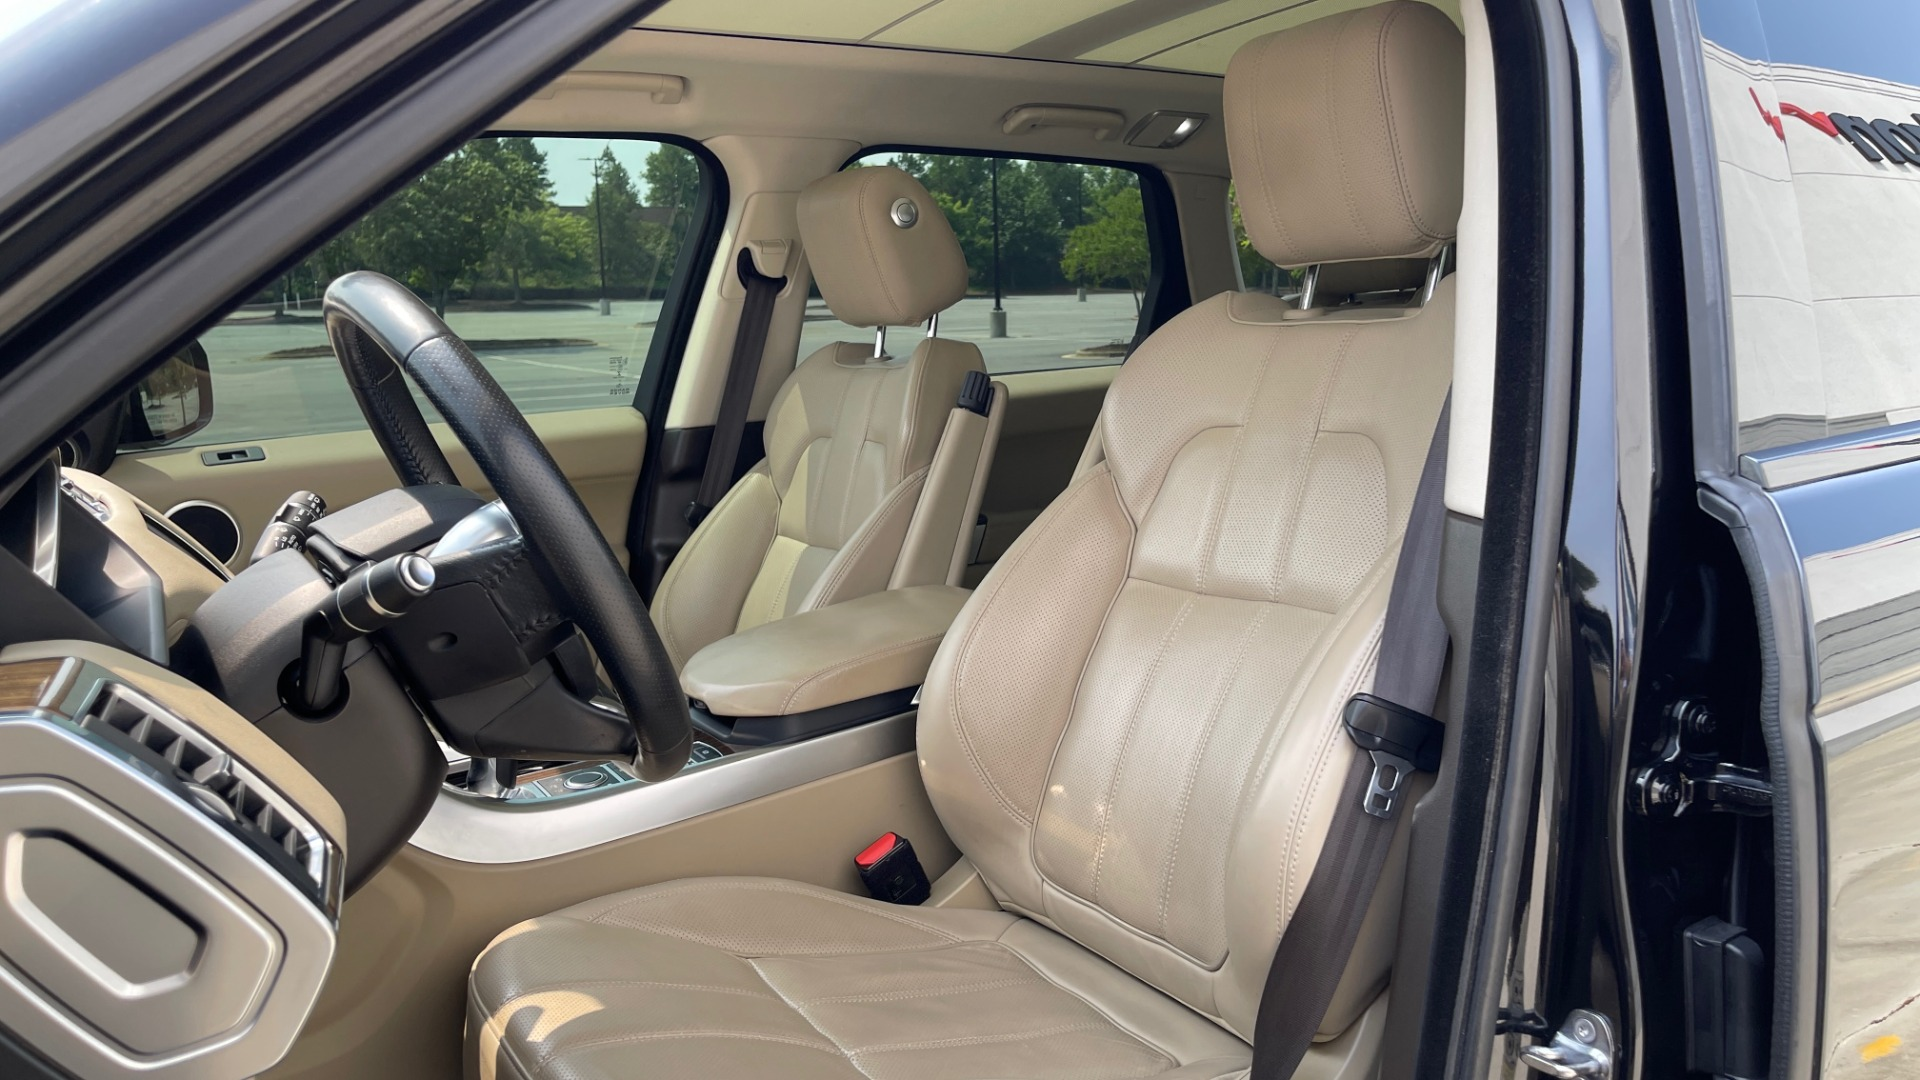 Used 2016 Land Rover RANGE ROVER SPORT V6 HSE / NAV / PANO-ROOF / MERIDIAN / CONSOLE COOLER / CAMERAS for sale $40,995 at Formula Imports in Charlotte NC 28227 30